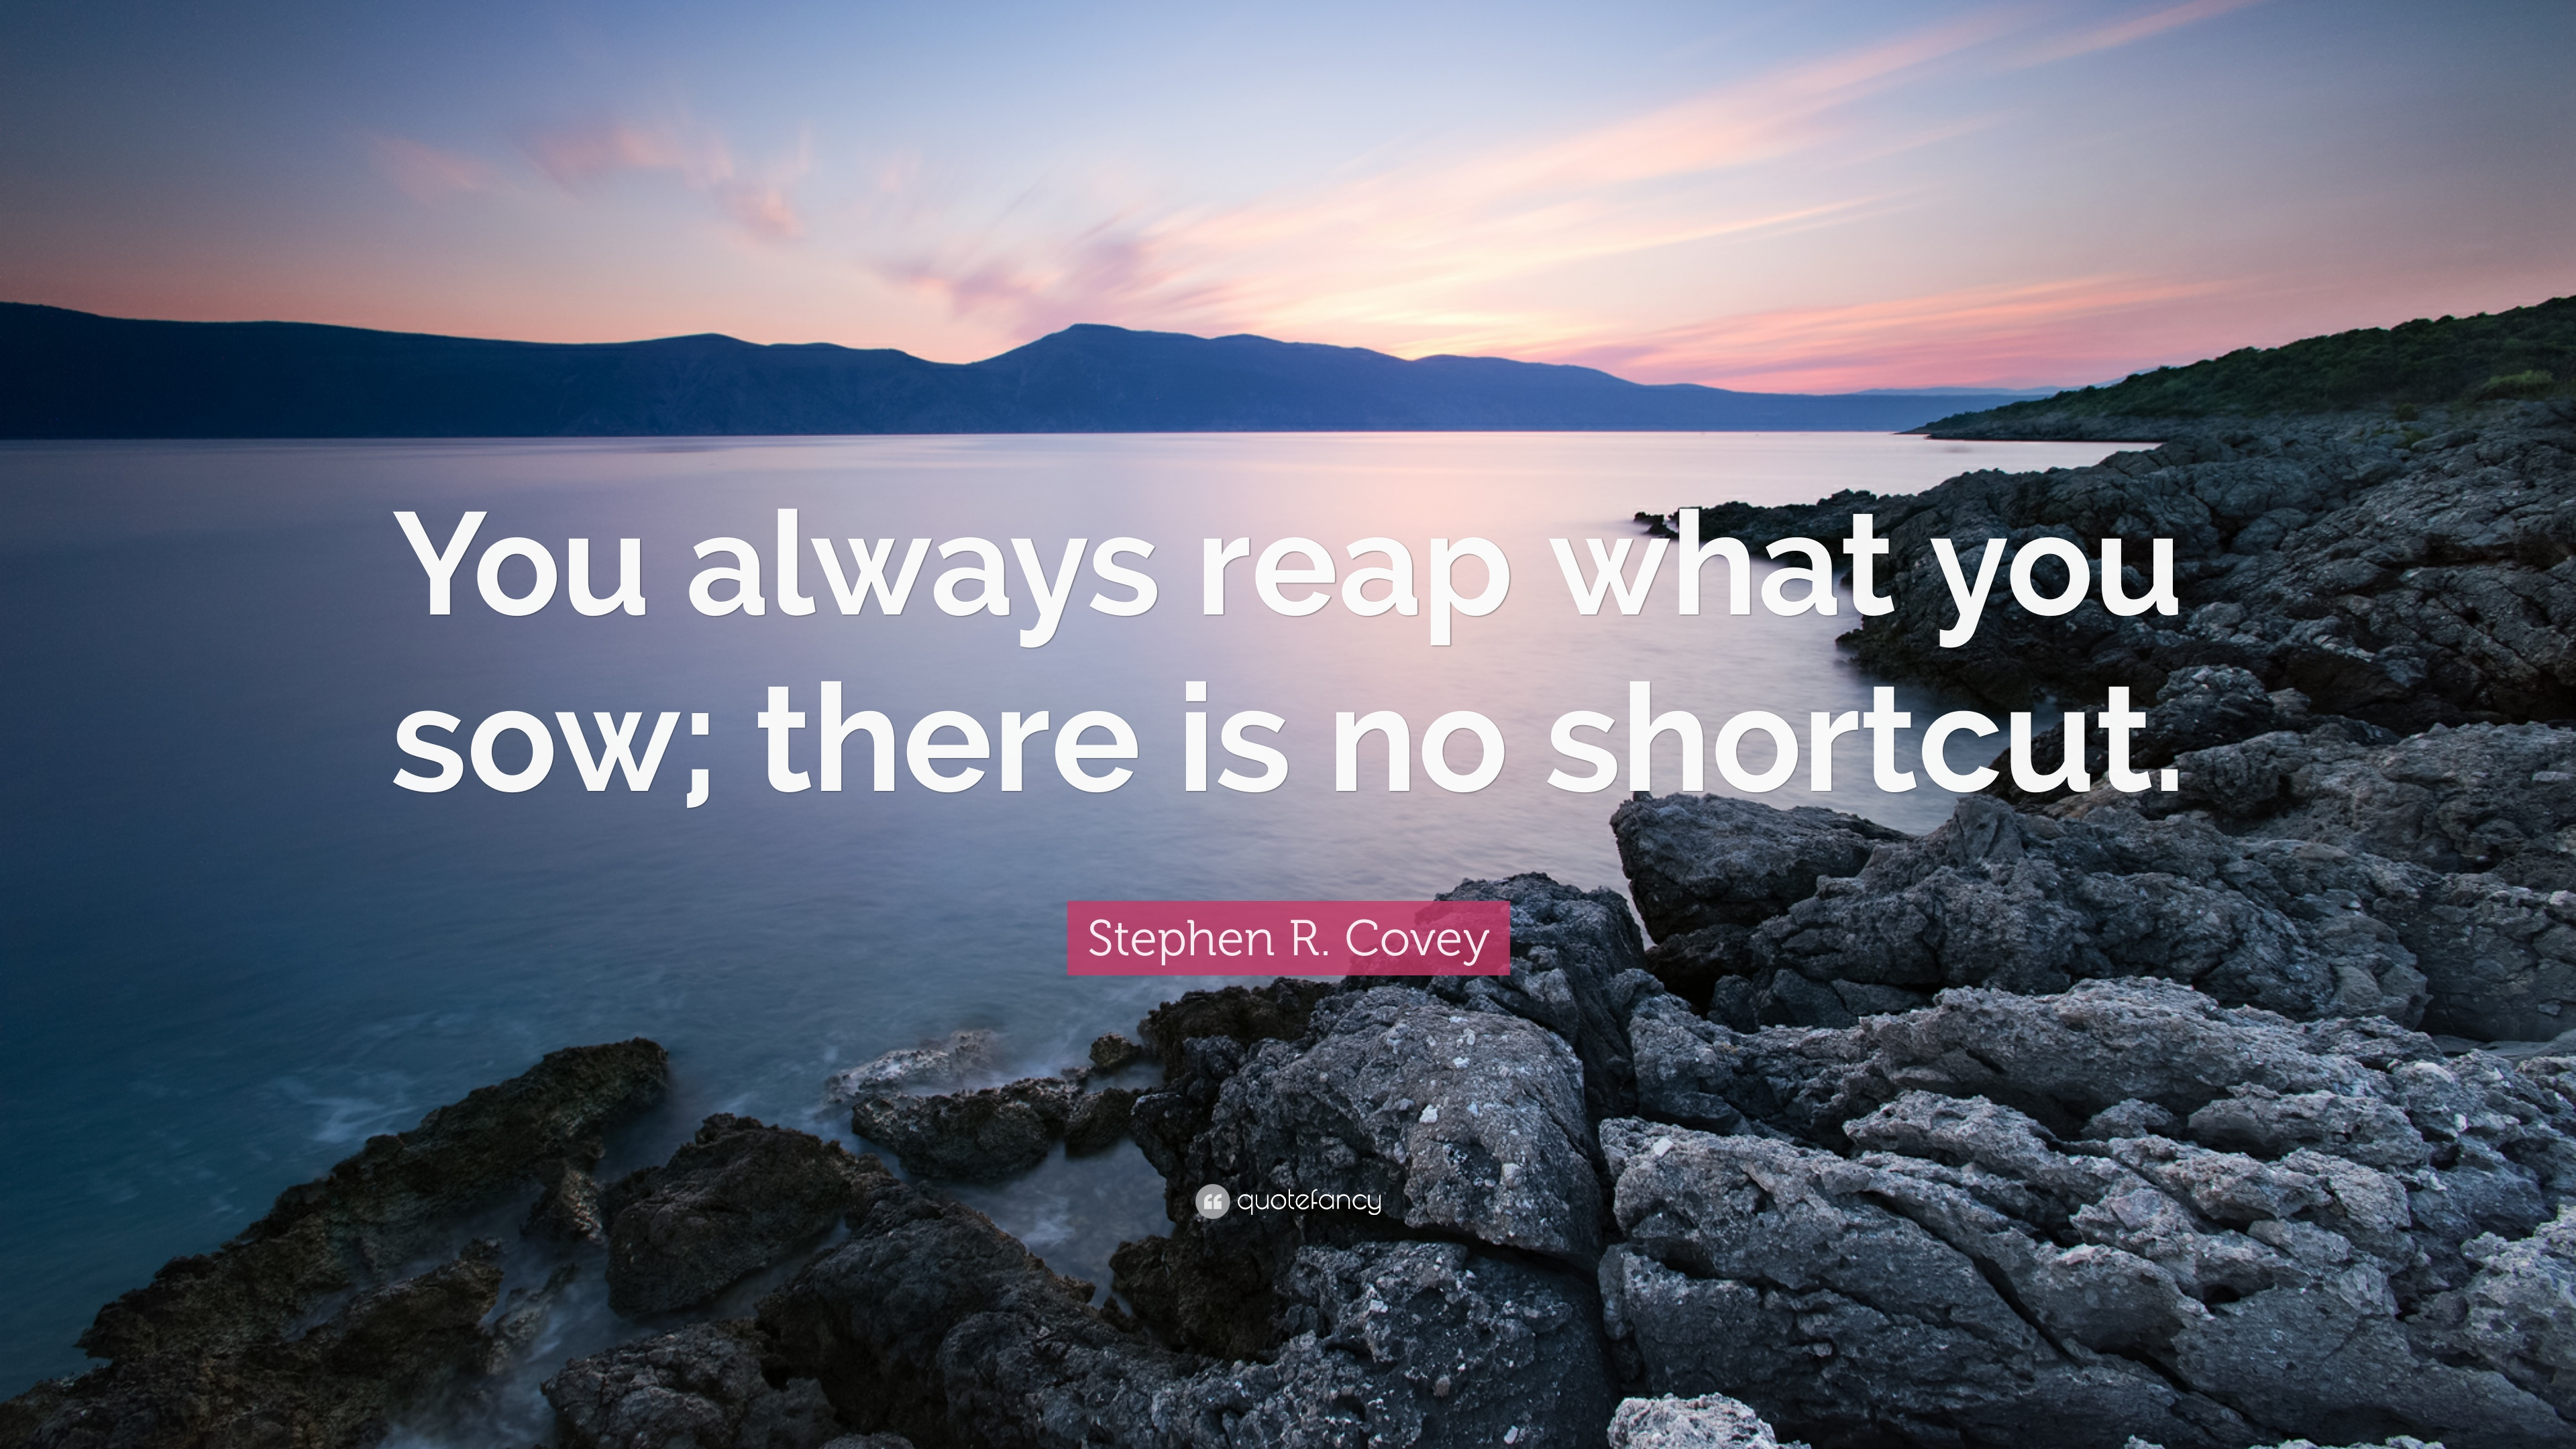 "Reap What You Sow Quotes Mesmerizing Stephen Rcovey Quote ""You Always Reap What You Sow There Is No ."